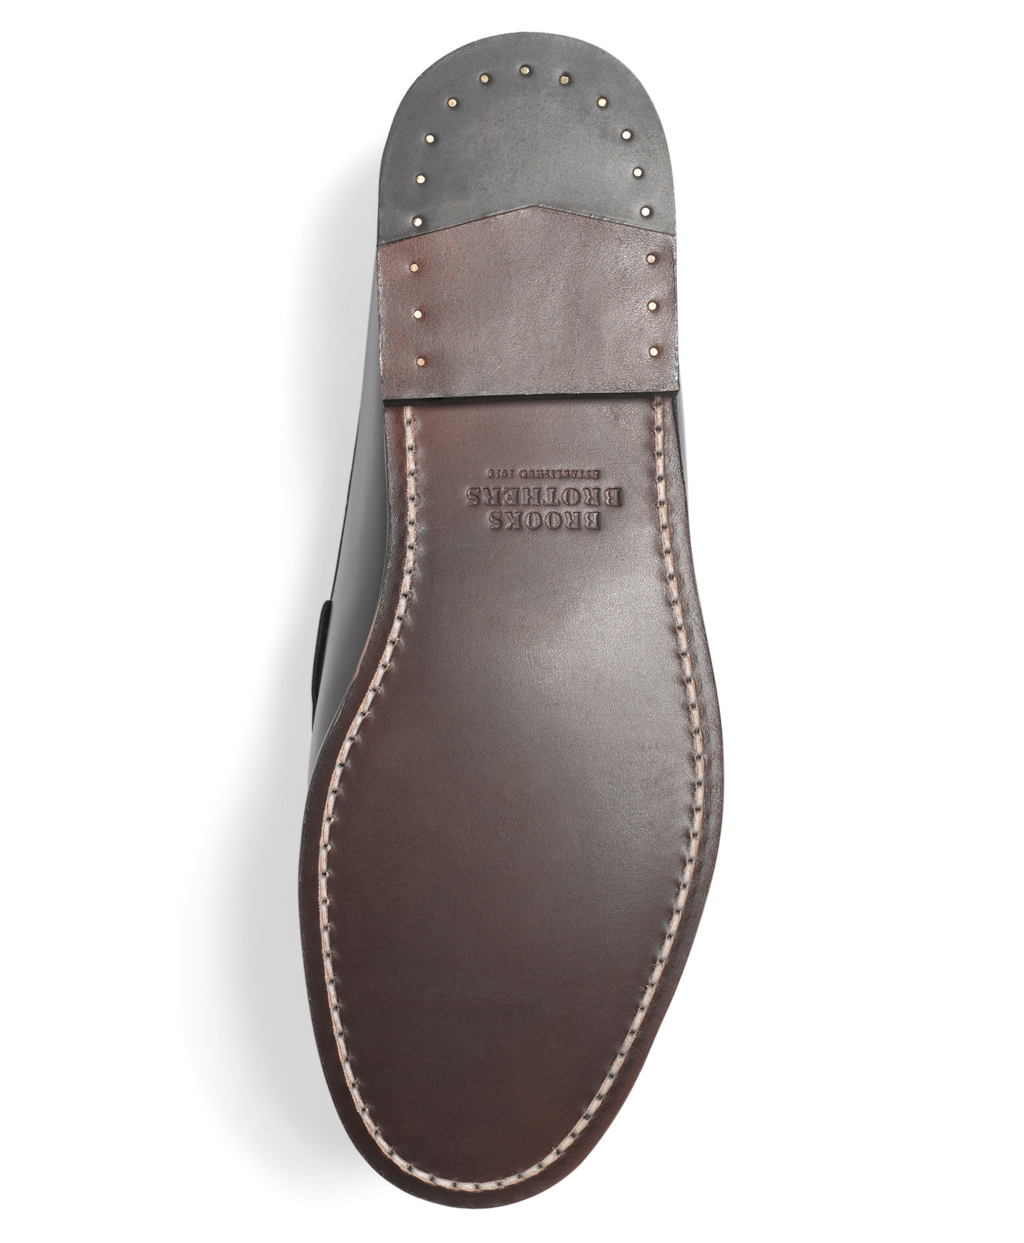 Lyst - Brooks Brothers Classic Penny Loafers in Black for Men